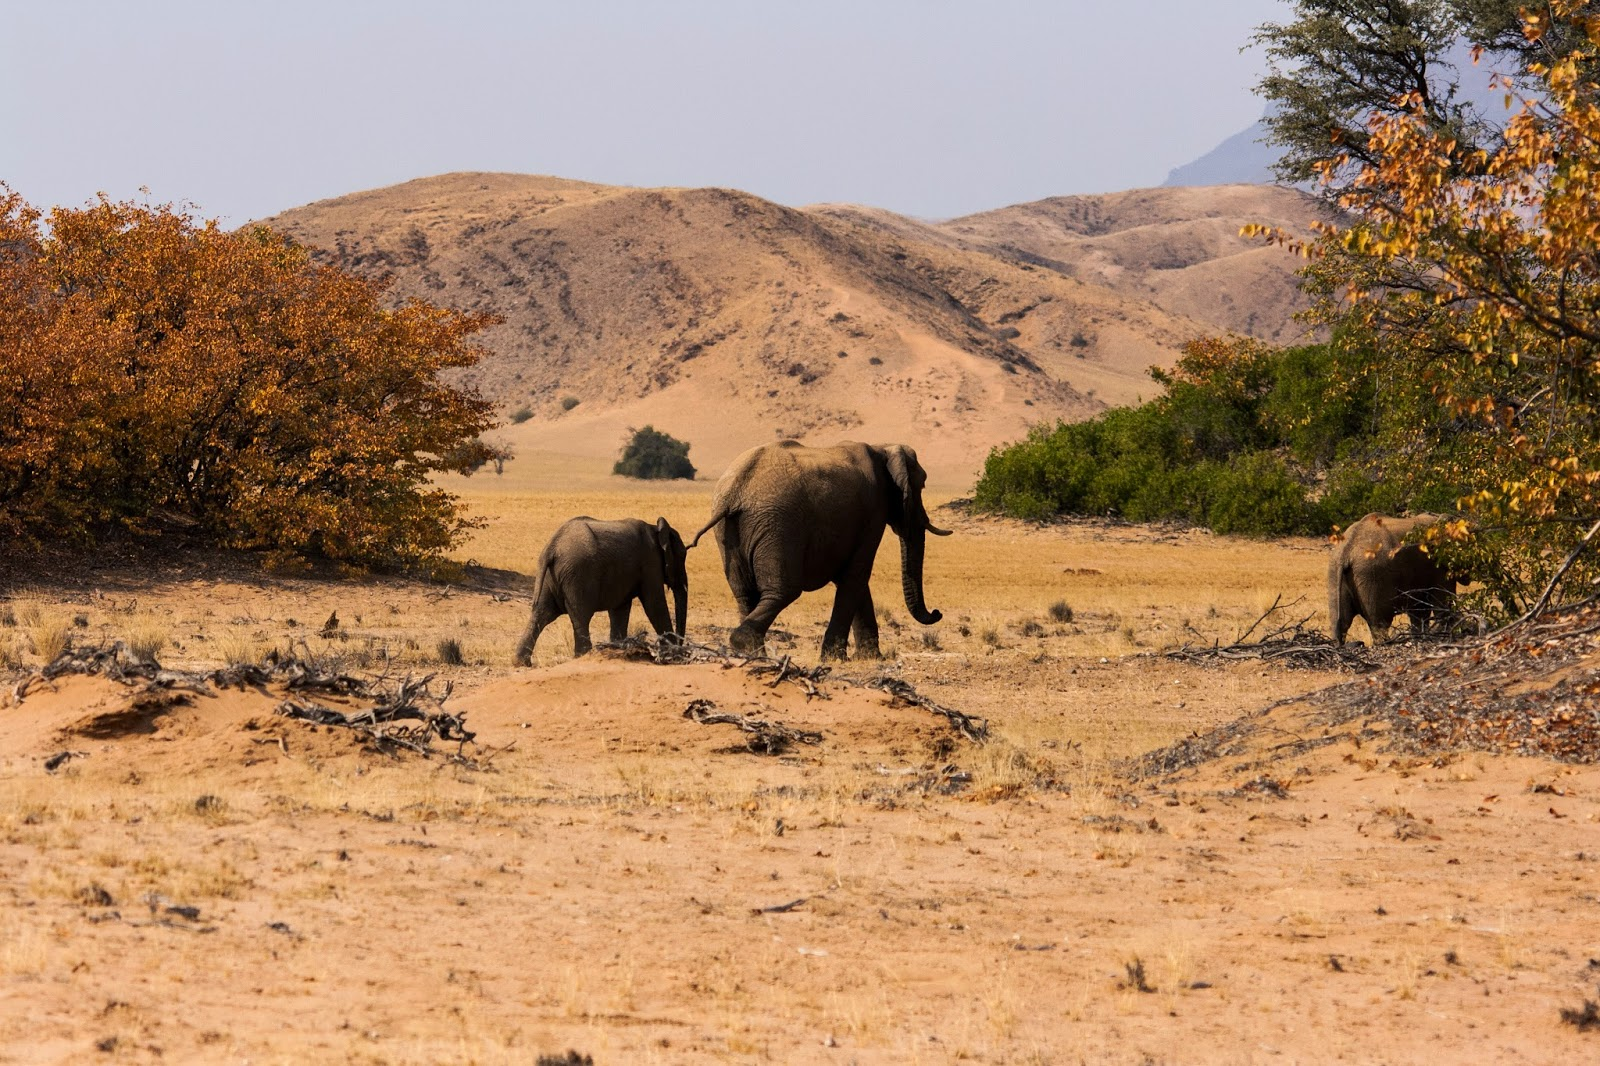 elephants damaraland namibia